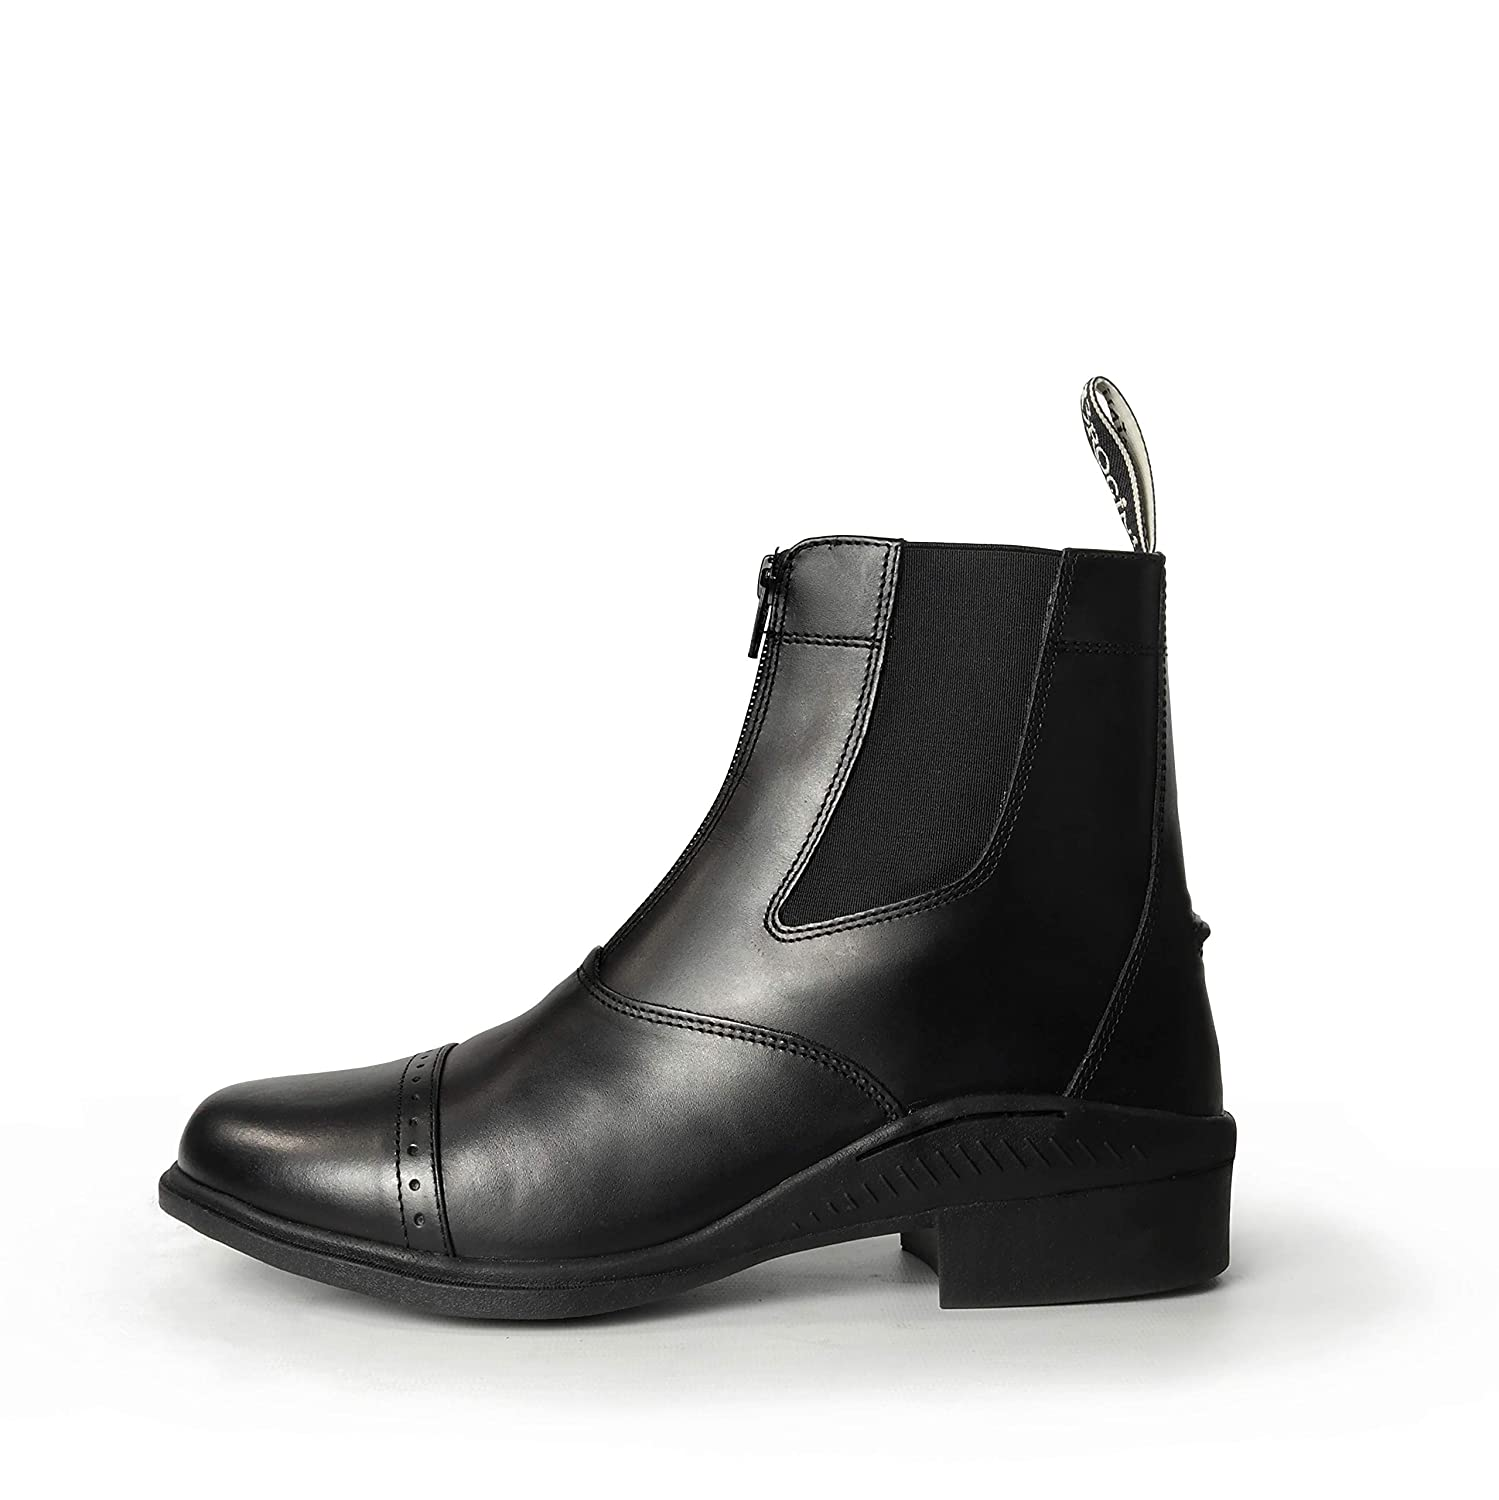 Brogini incantana Zip Boot